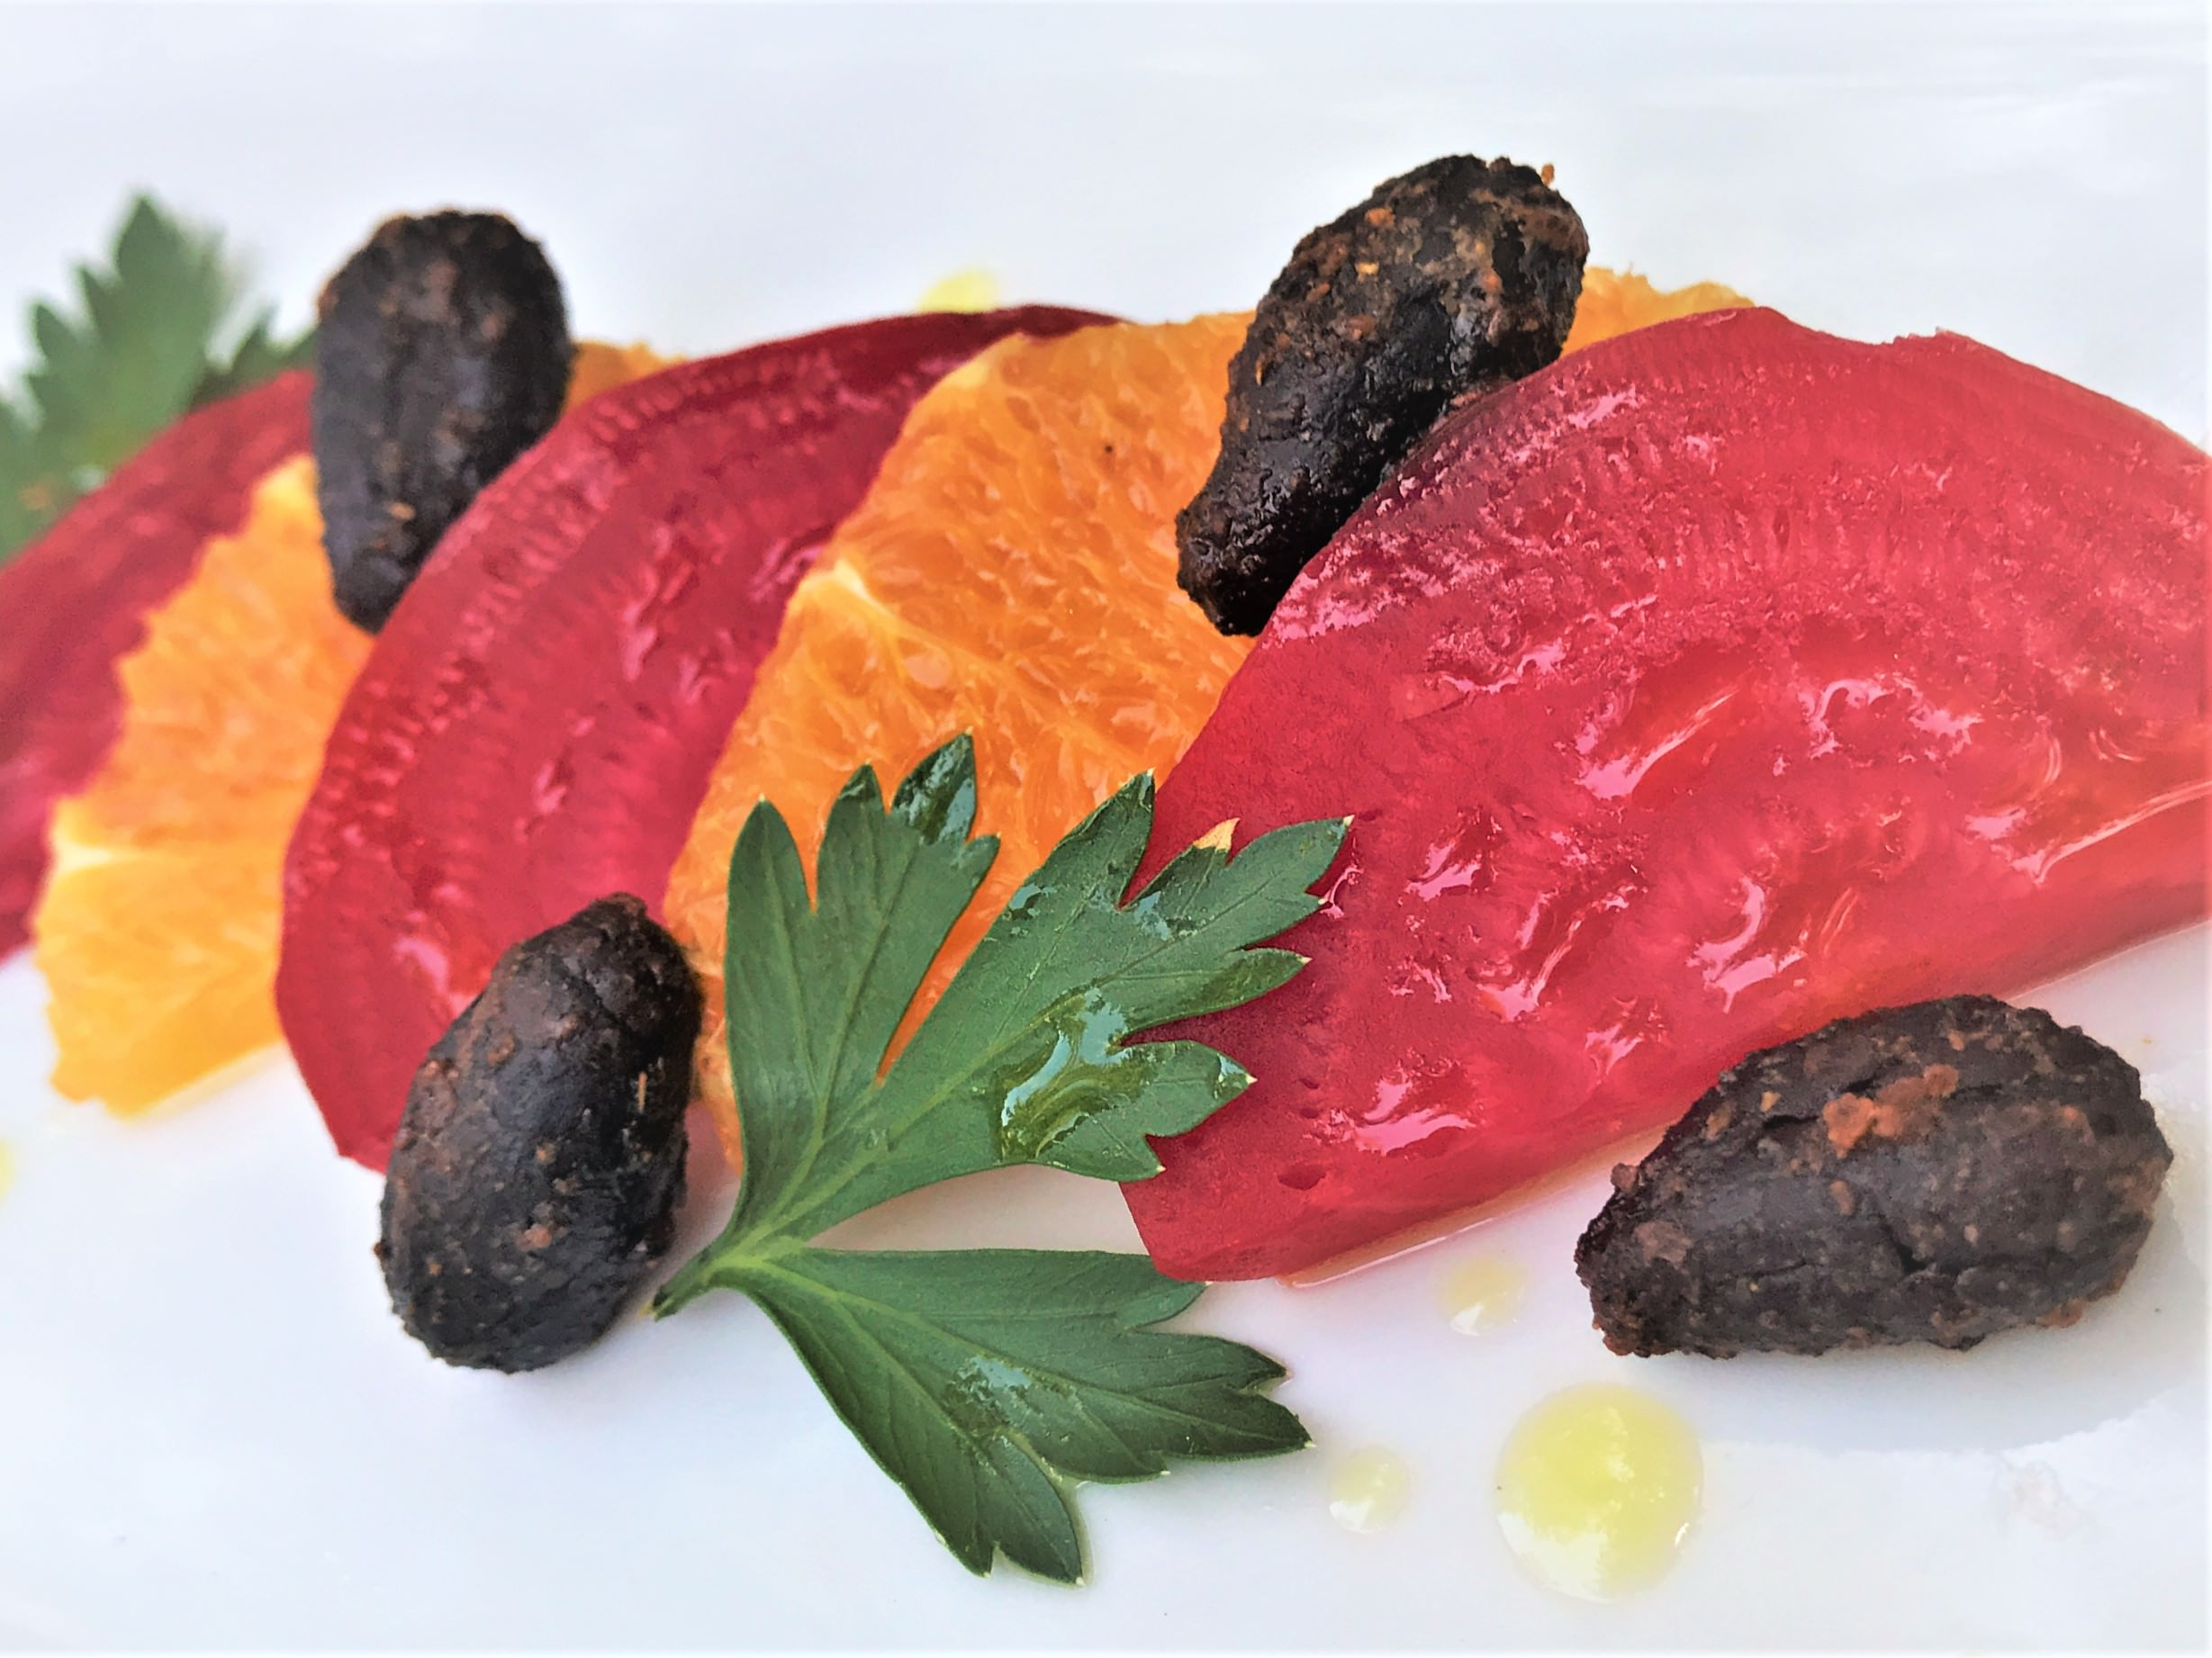 good-king-gourmet-snacking-cacao-strength-spicy-chili-orange-beet-salad-slices